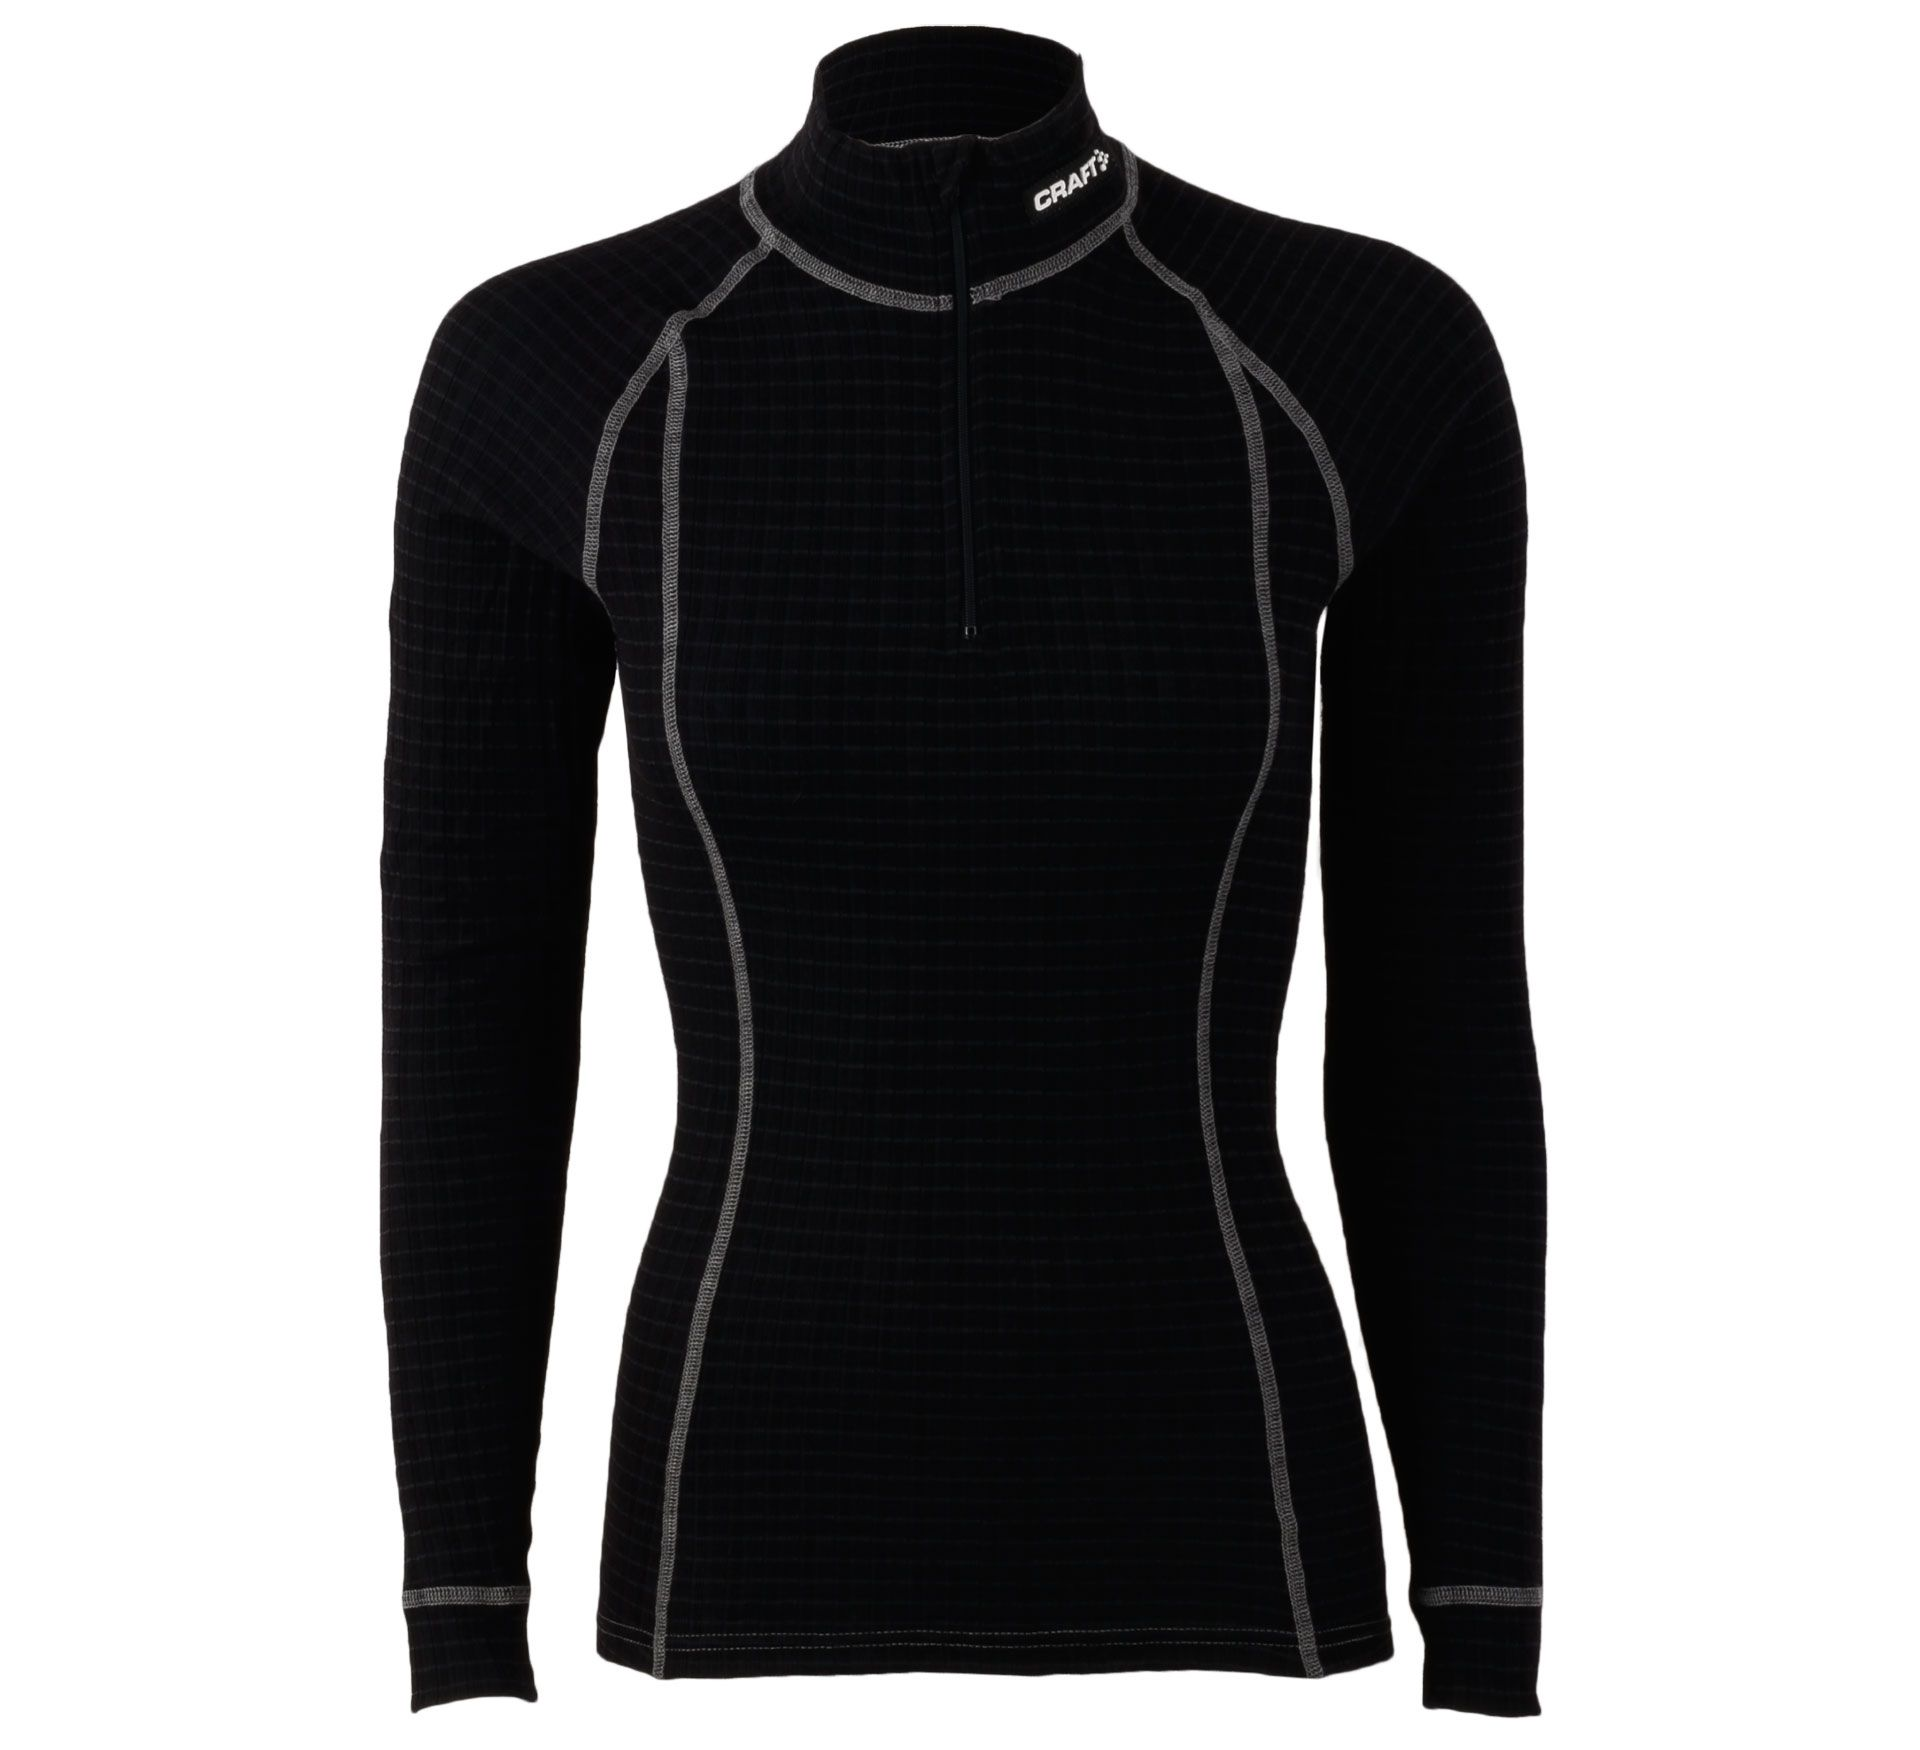 Craft active mockneck zip women